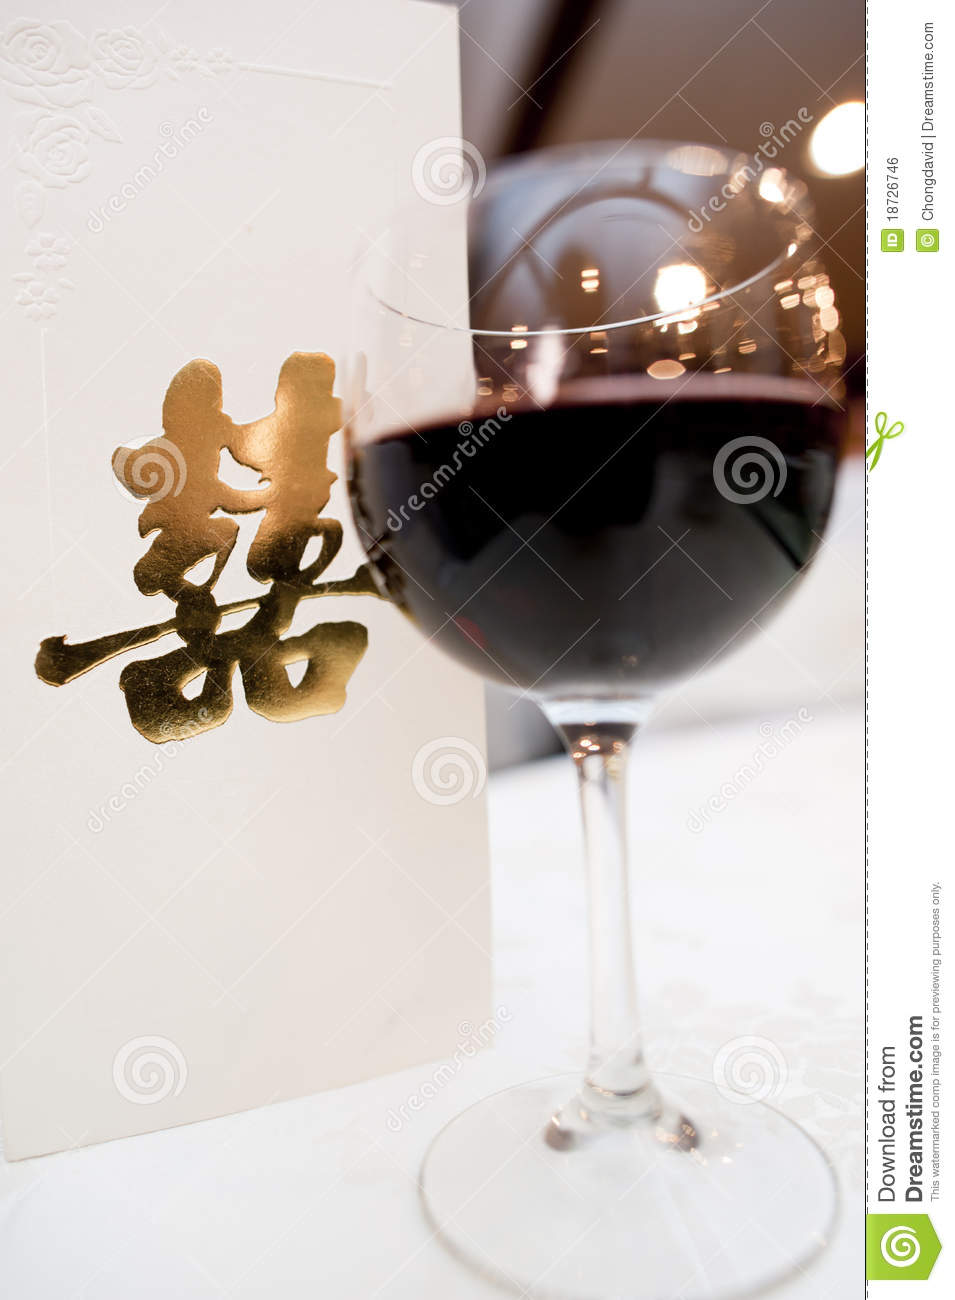 Chinese Wedding Menu With Wine Royalty Free Stock Image - Image: 18726746